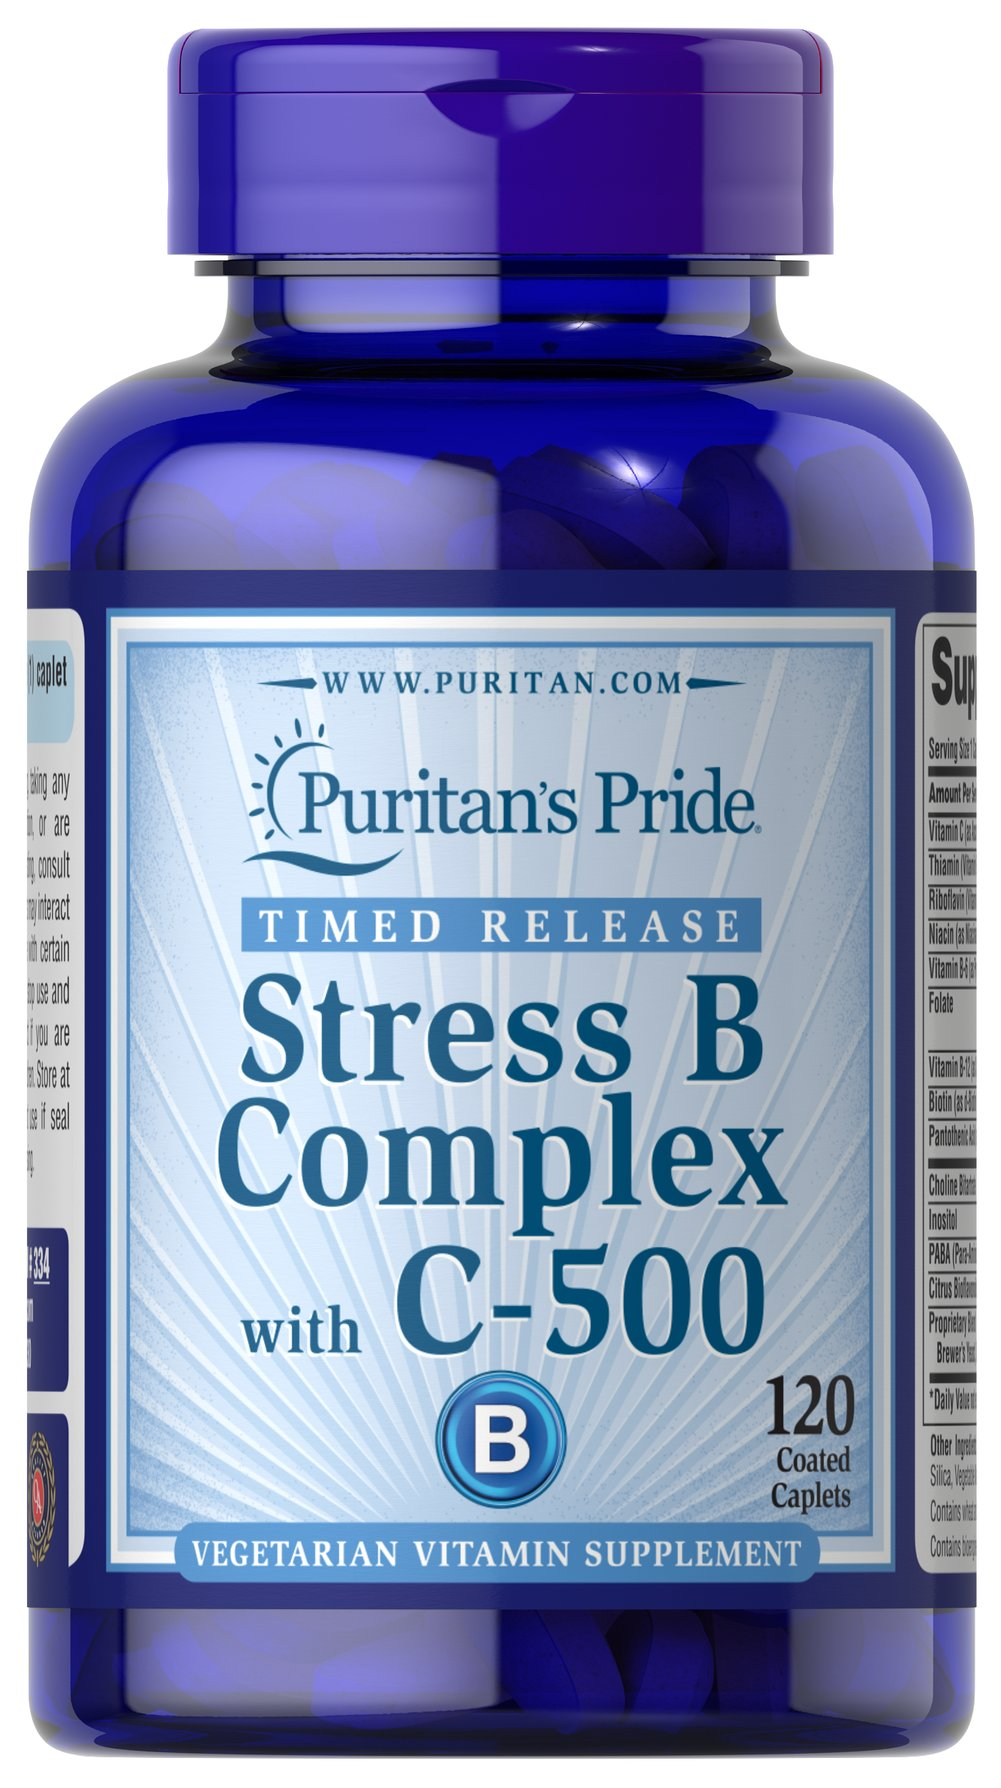 Stress Vitamin B-Complex with Vitamin C-500 Timed Release <p>Timed-Release Stress Vitamin B Complex with Vitamin C 500 provides an excellent source of B Complex vitamins to help safeguard a sufficient daily intake.** The B Vitamins, which are essential for the maintenance of healthy nervous tissue, each play a role in energy metabolism in the body.** The 500 mg of Vitamin C is added to help support immune function.**</p> 120 Caplets  $31.98